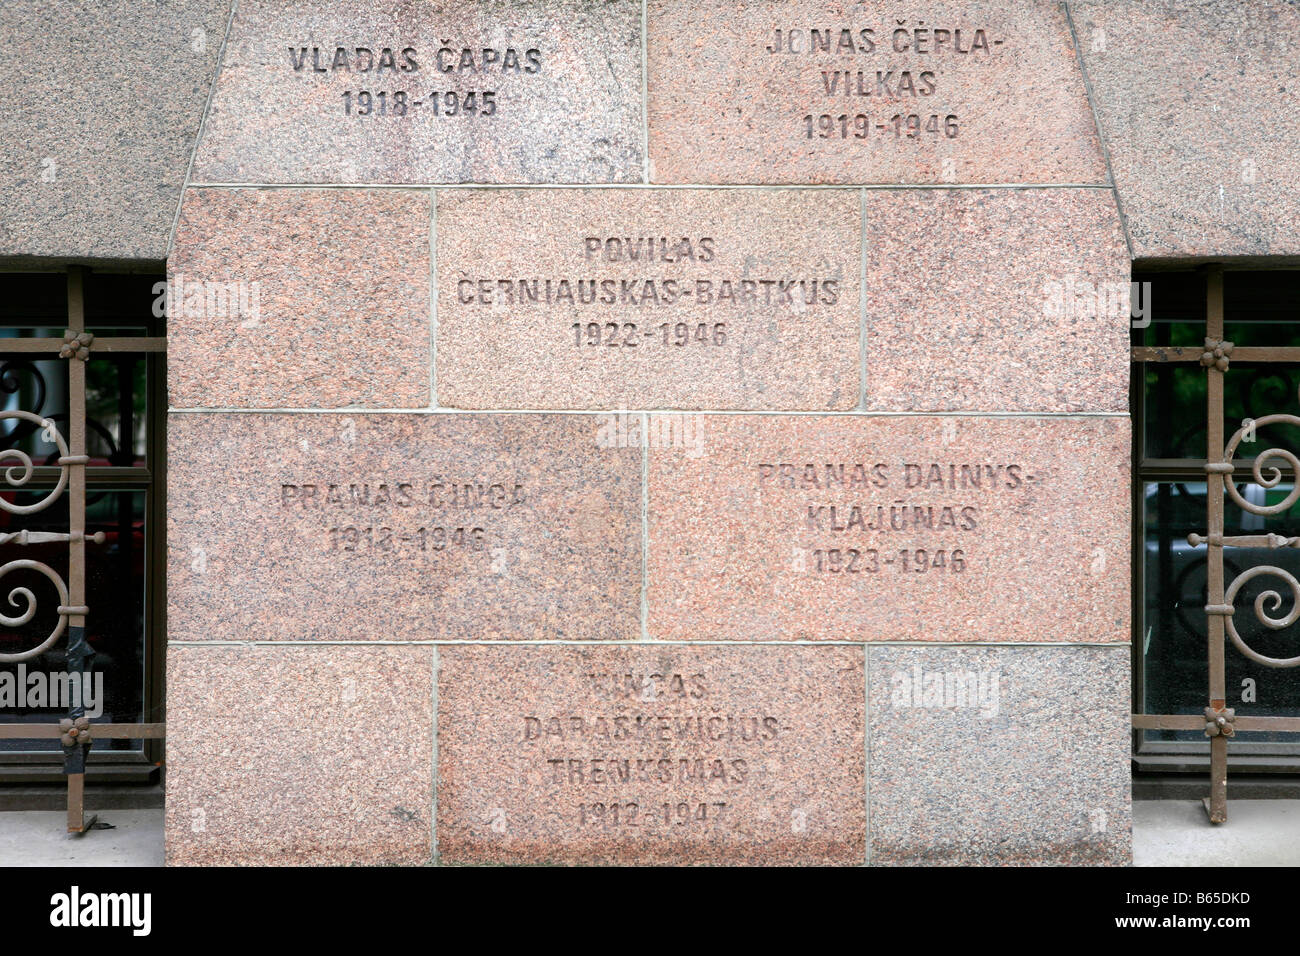 Plaque outside the Museum of Genocide Victims commemorating the victims of the Soviet occupation in Vilnius, Lithuania - Stock Image